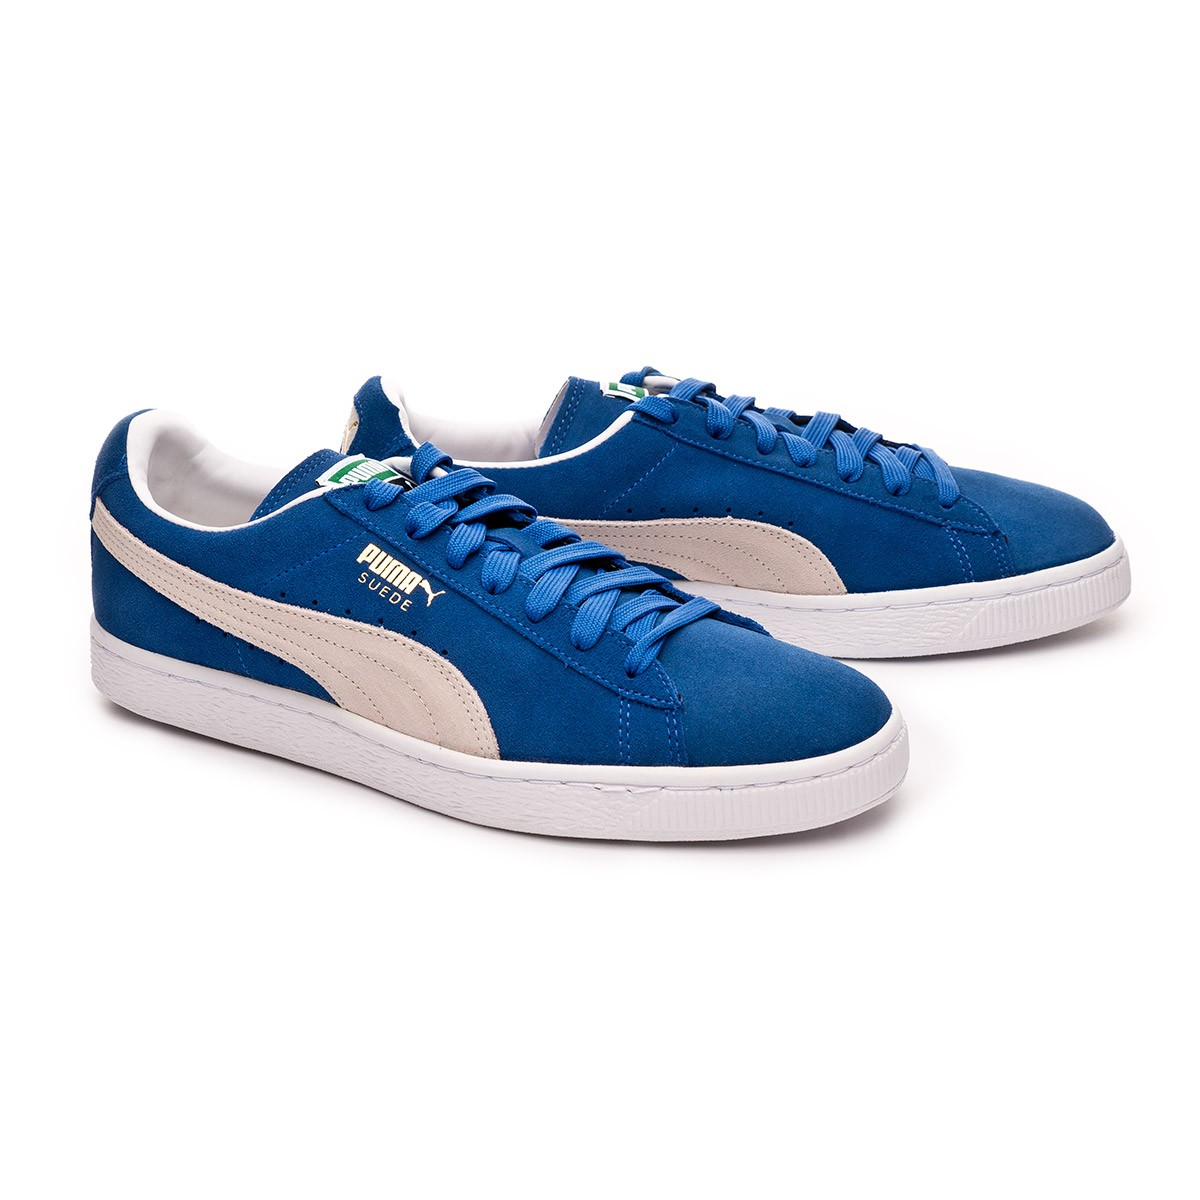 reputable site 5bcf2 8d444 Zapatilla Suede Classic+ Olympian blue-white